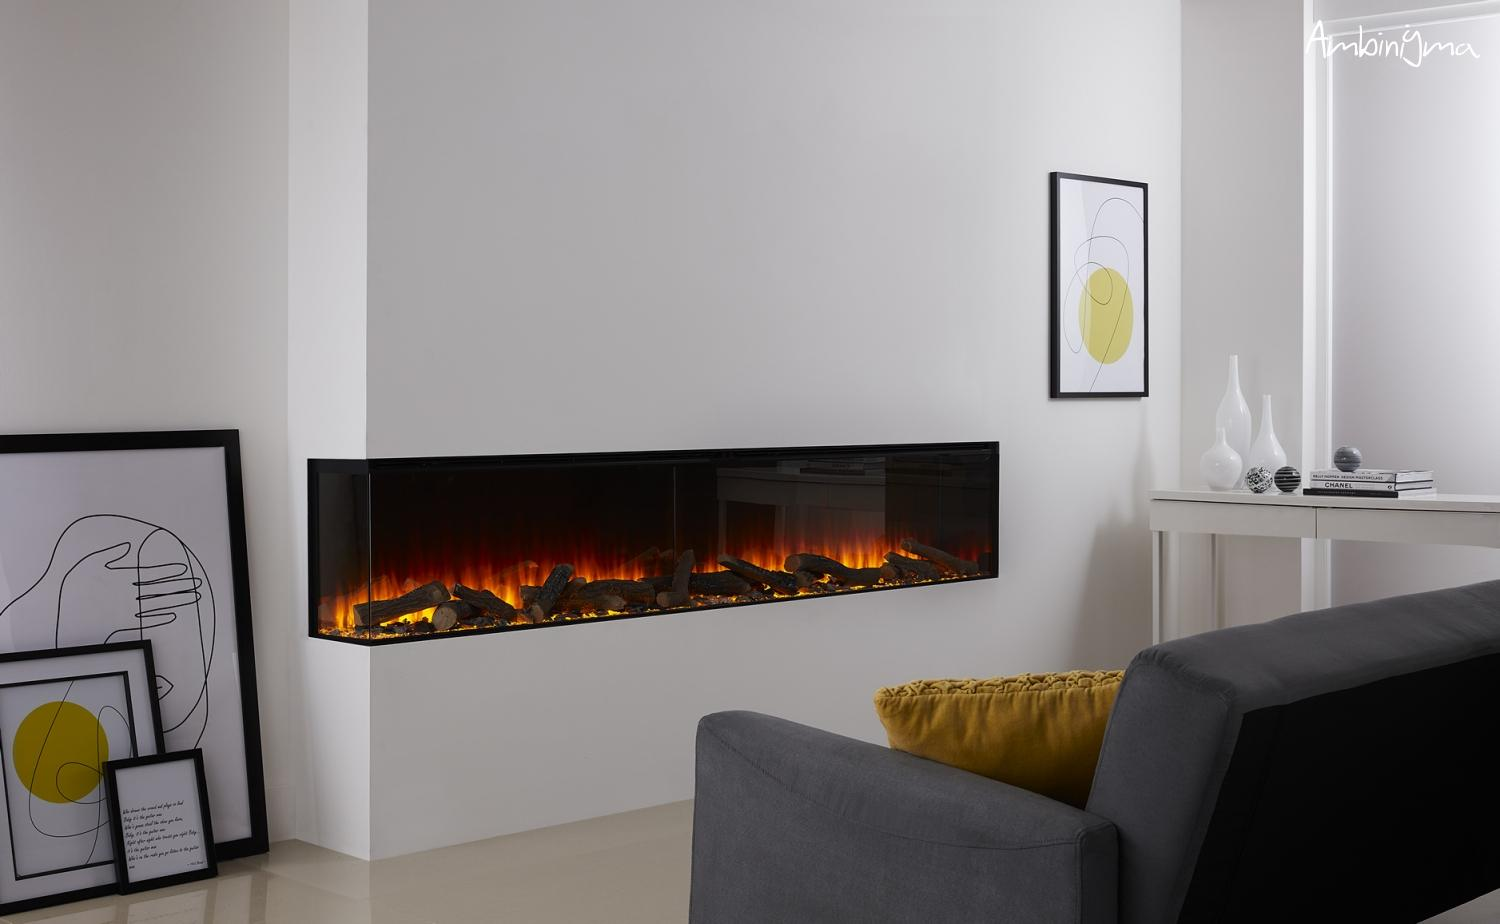 Lareira Eletrica BRITISH FIRE new forest 2400  Visao lateral 2-VIDROS